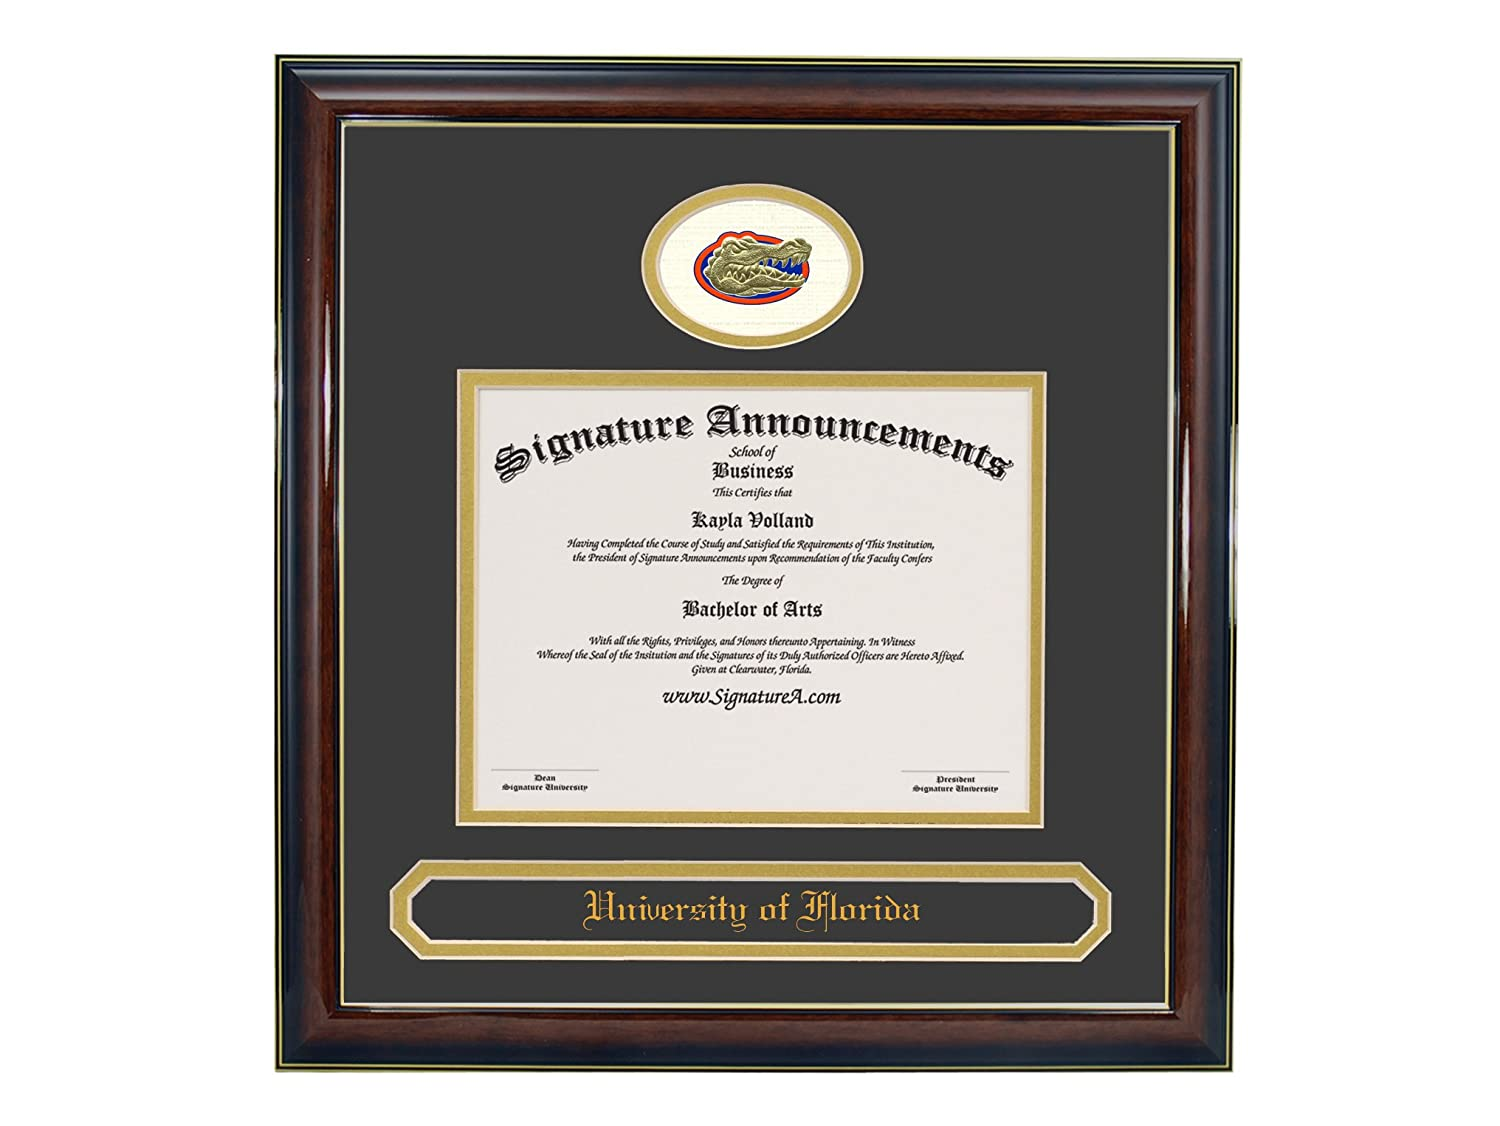 Undergraduate and Graduate Graduation Diploma Frame with Sculpted Foil Seal /& Name Signature Announcements University of Florida Gloss Mahogany w//Gold Accent, 20 x 20 UF